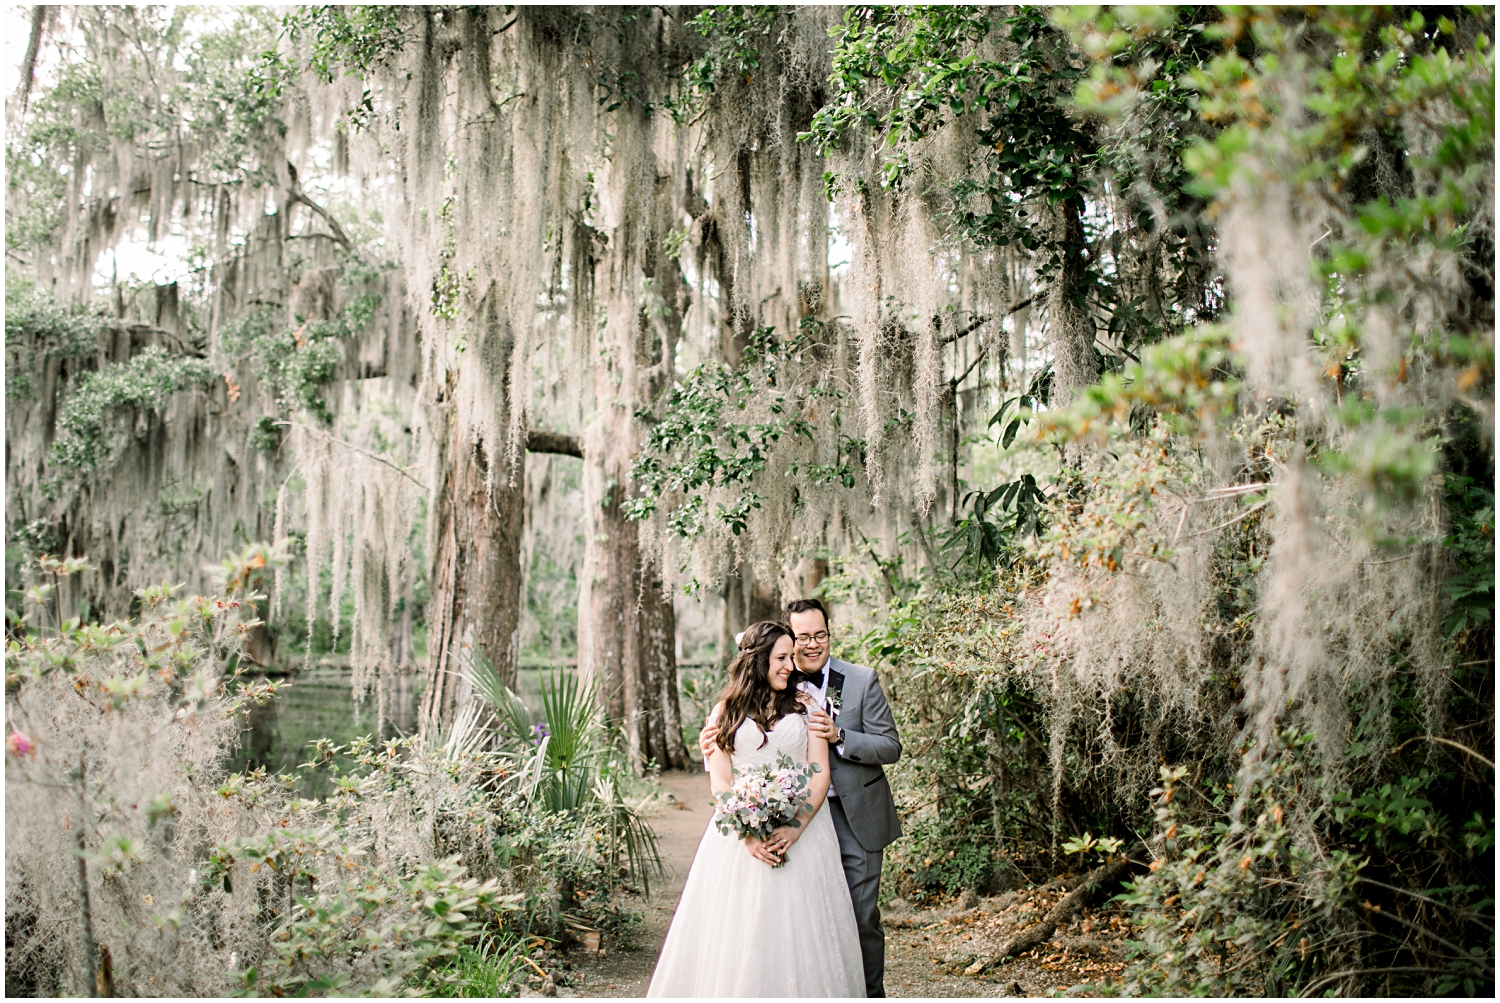 Magnolia Gardens Wedding, Charleston, SC_Erin L. Taylor Photography_0058.jpg